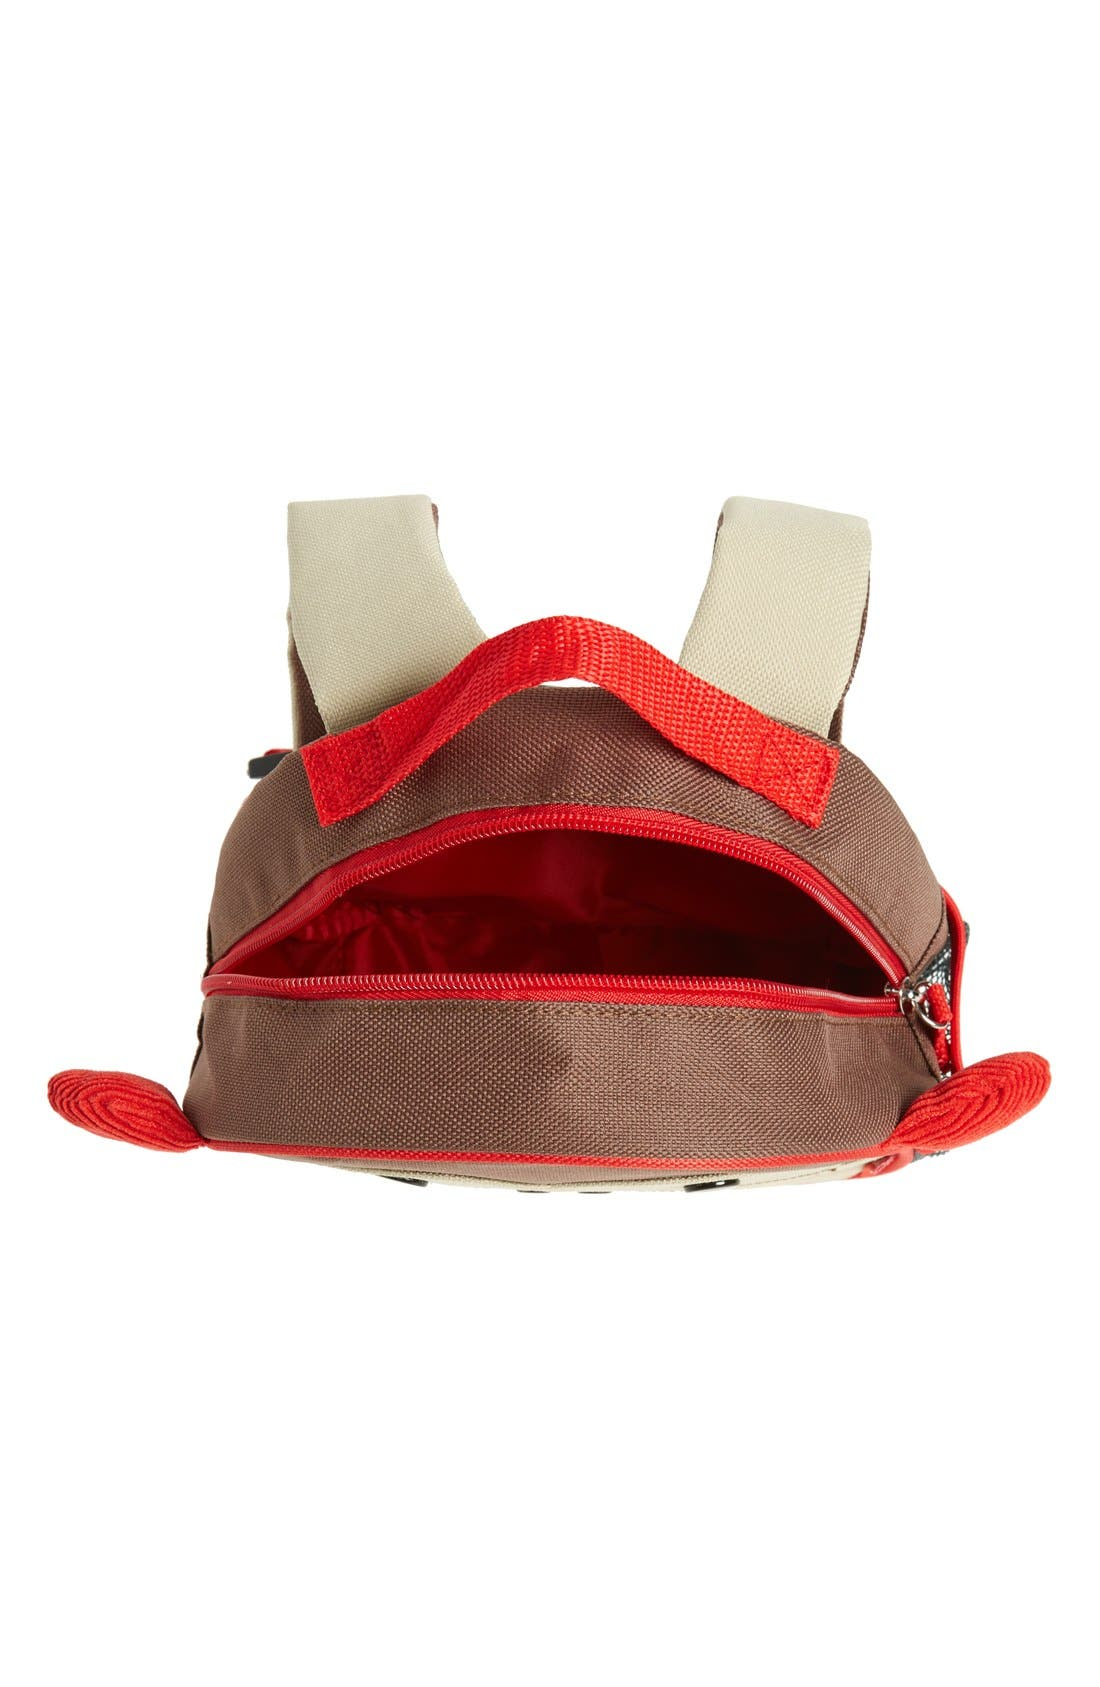 'Zoo' Safety Harness Backpack,                             Alternate thumbnail 5, color,                             MONKEY